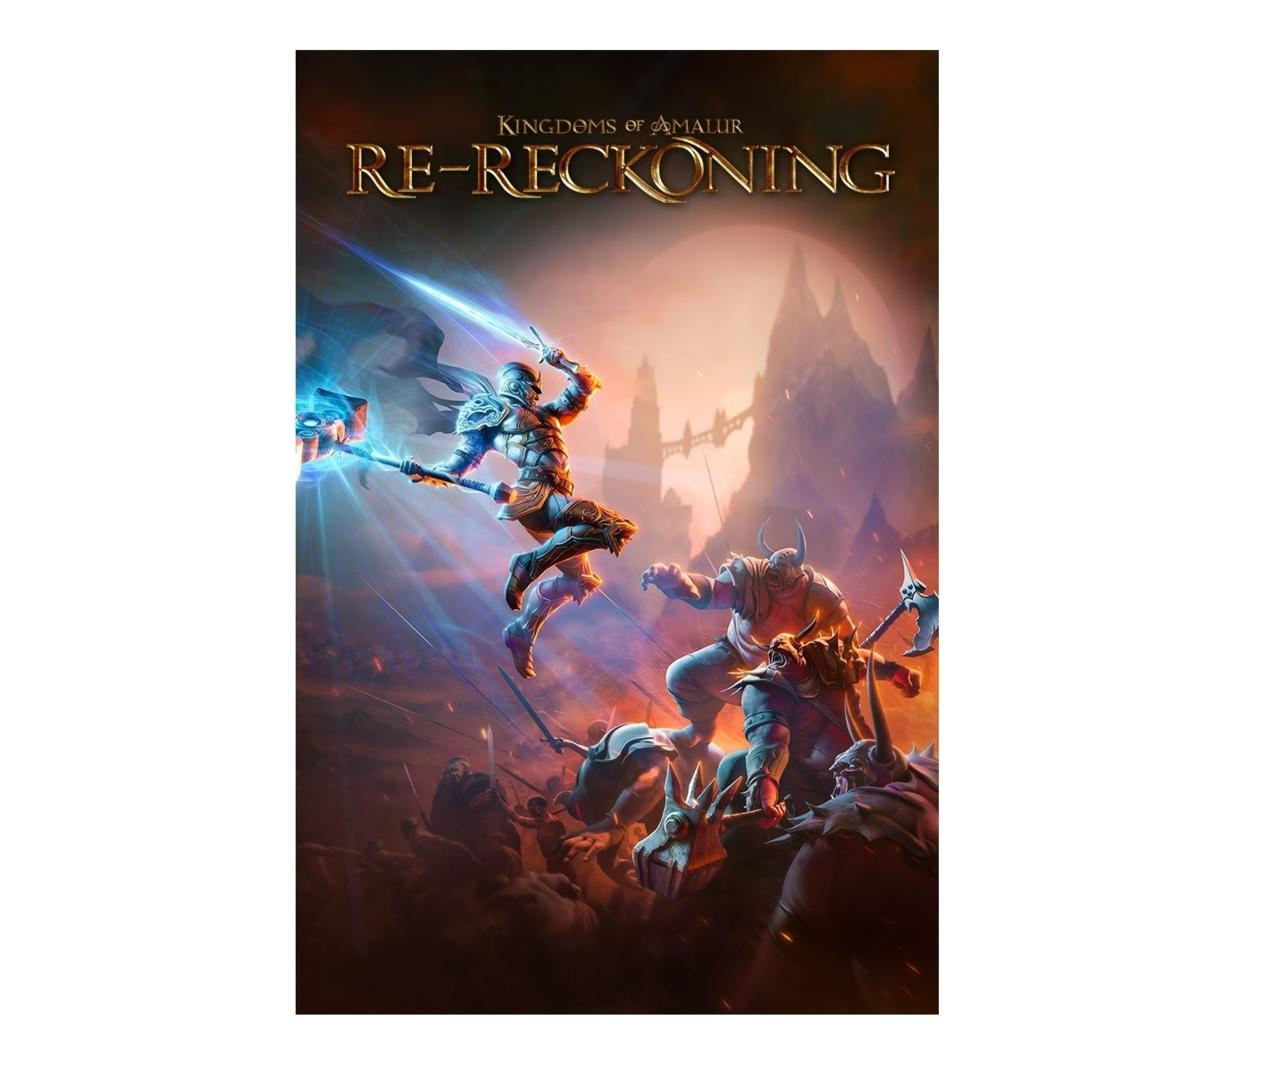 Official box art for Kingdoms of Amalur: Re-Reckoning